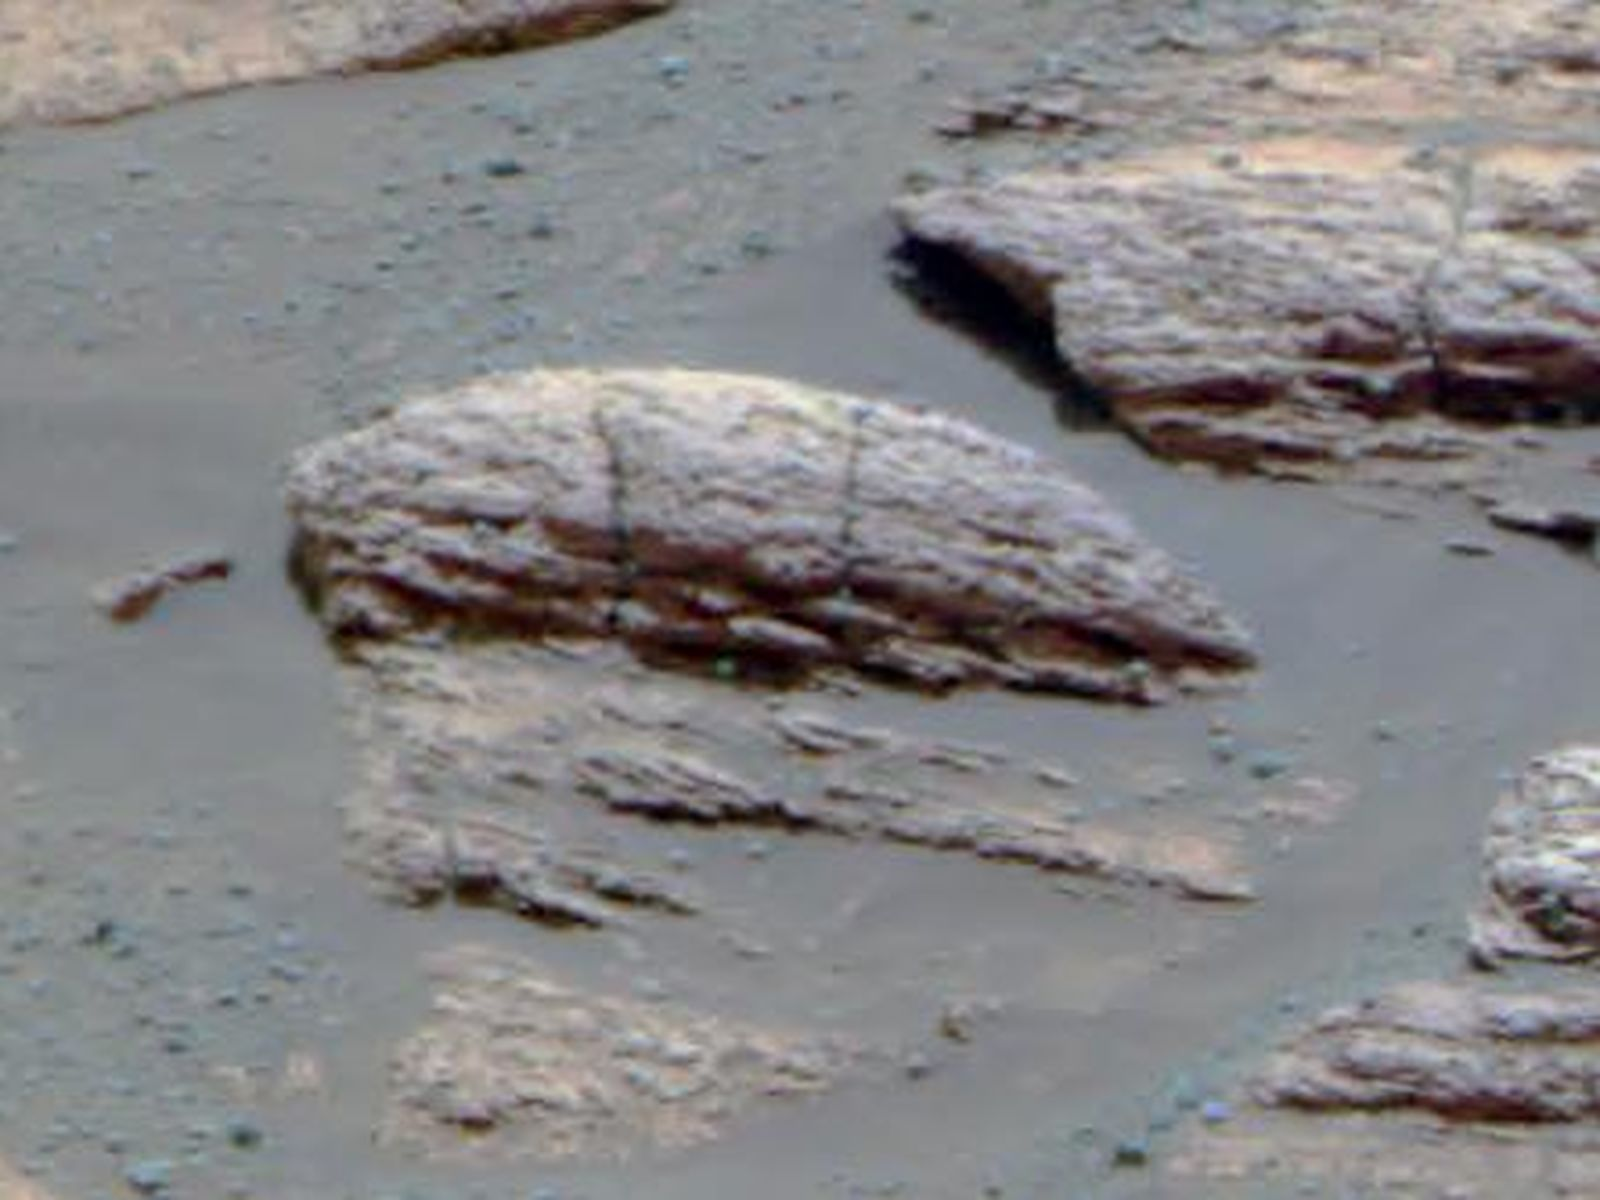 Space Images | Ripples in Rocks Point to Water